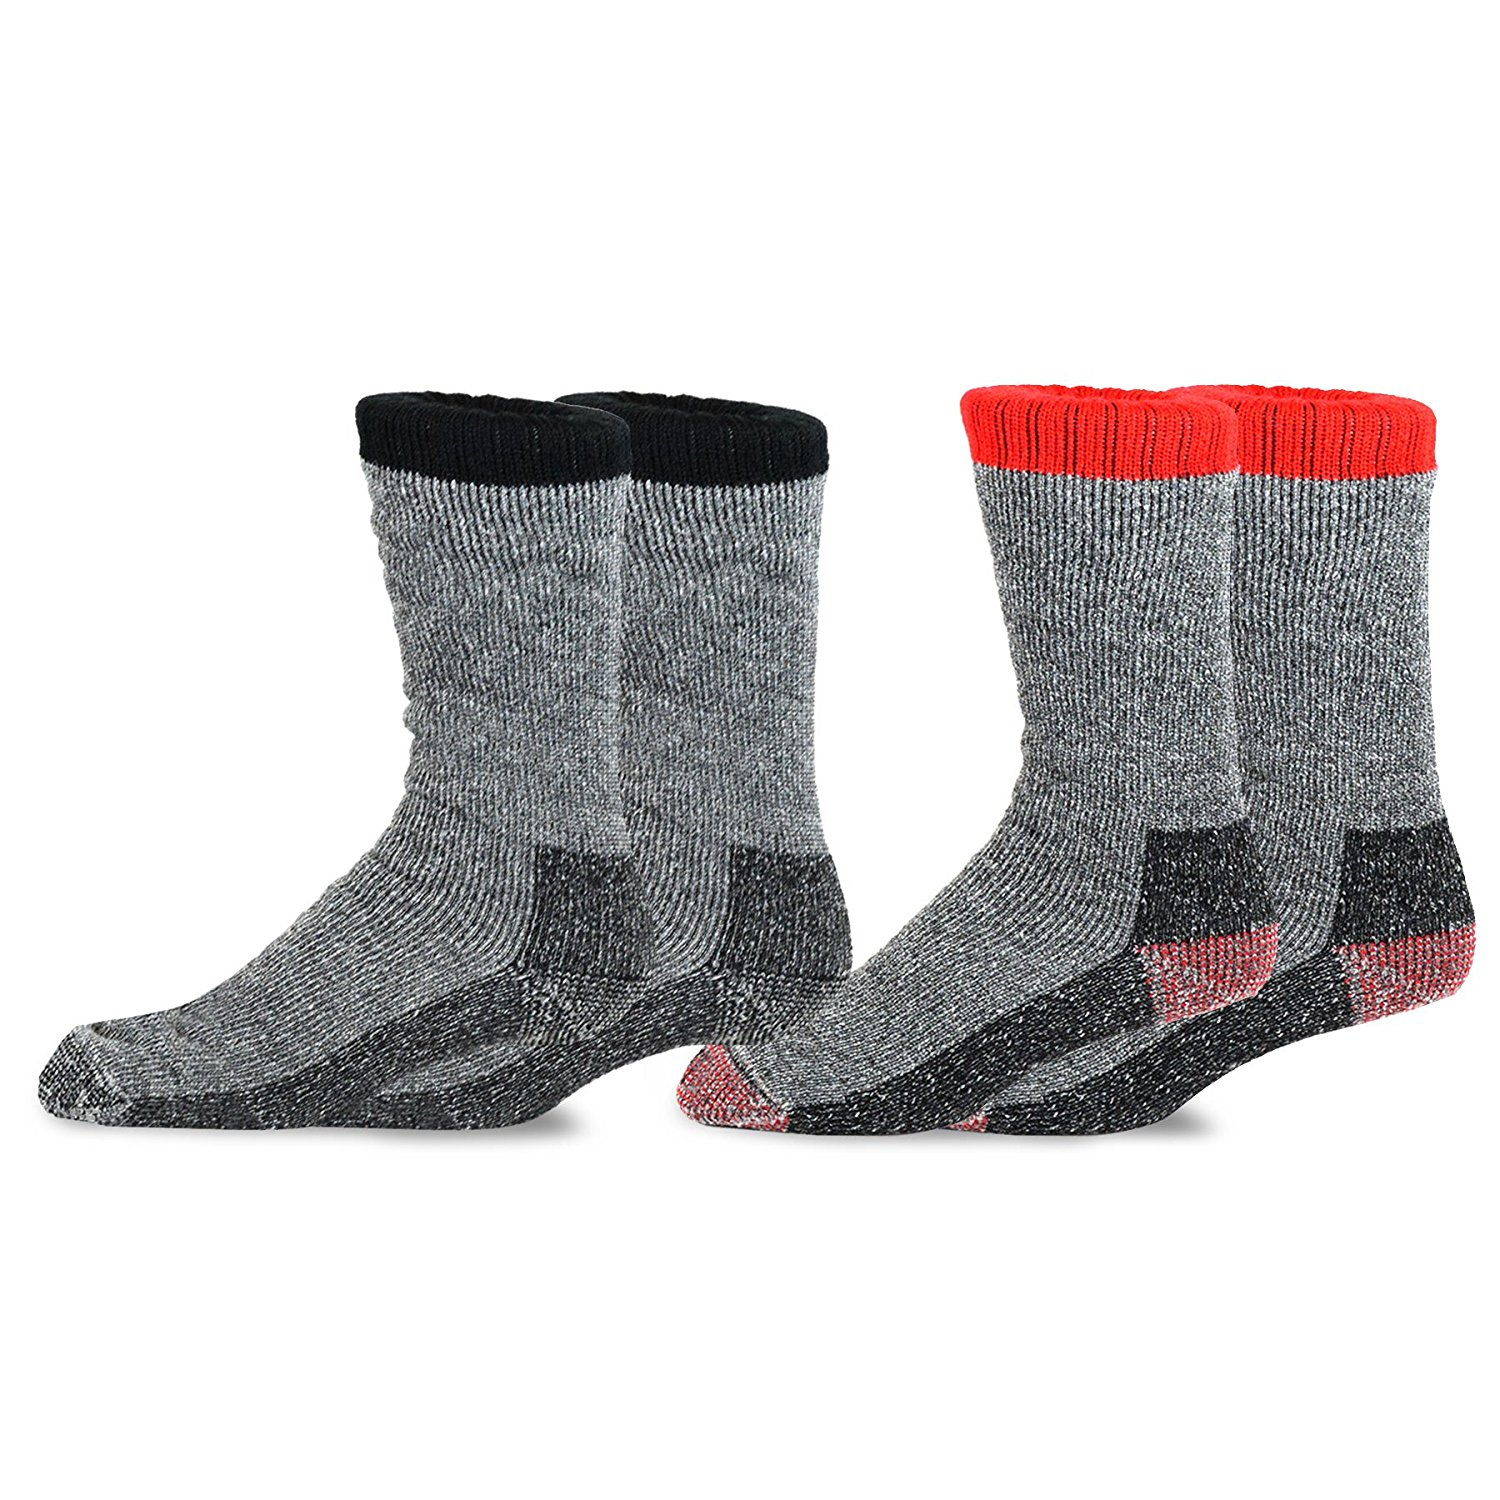 TeeHee Heavyweight Outdoor Wool Thermal Boot Socks for Men 2-Pack (Black and Red)